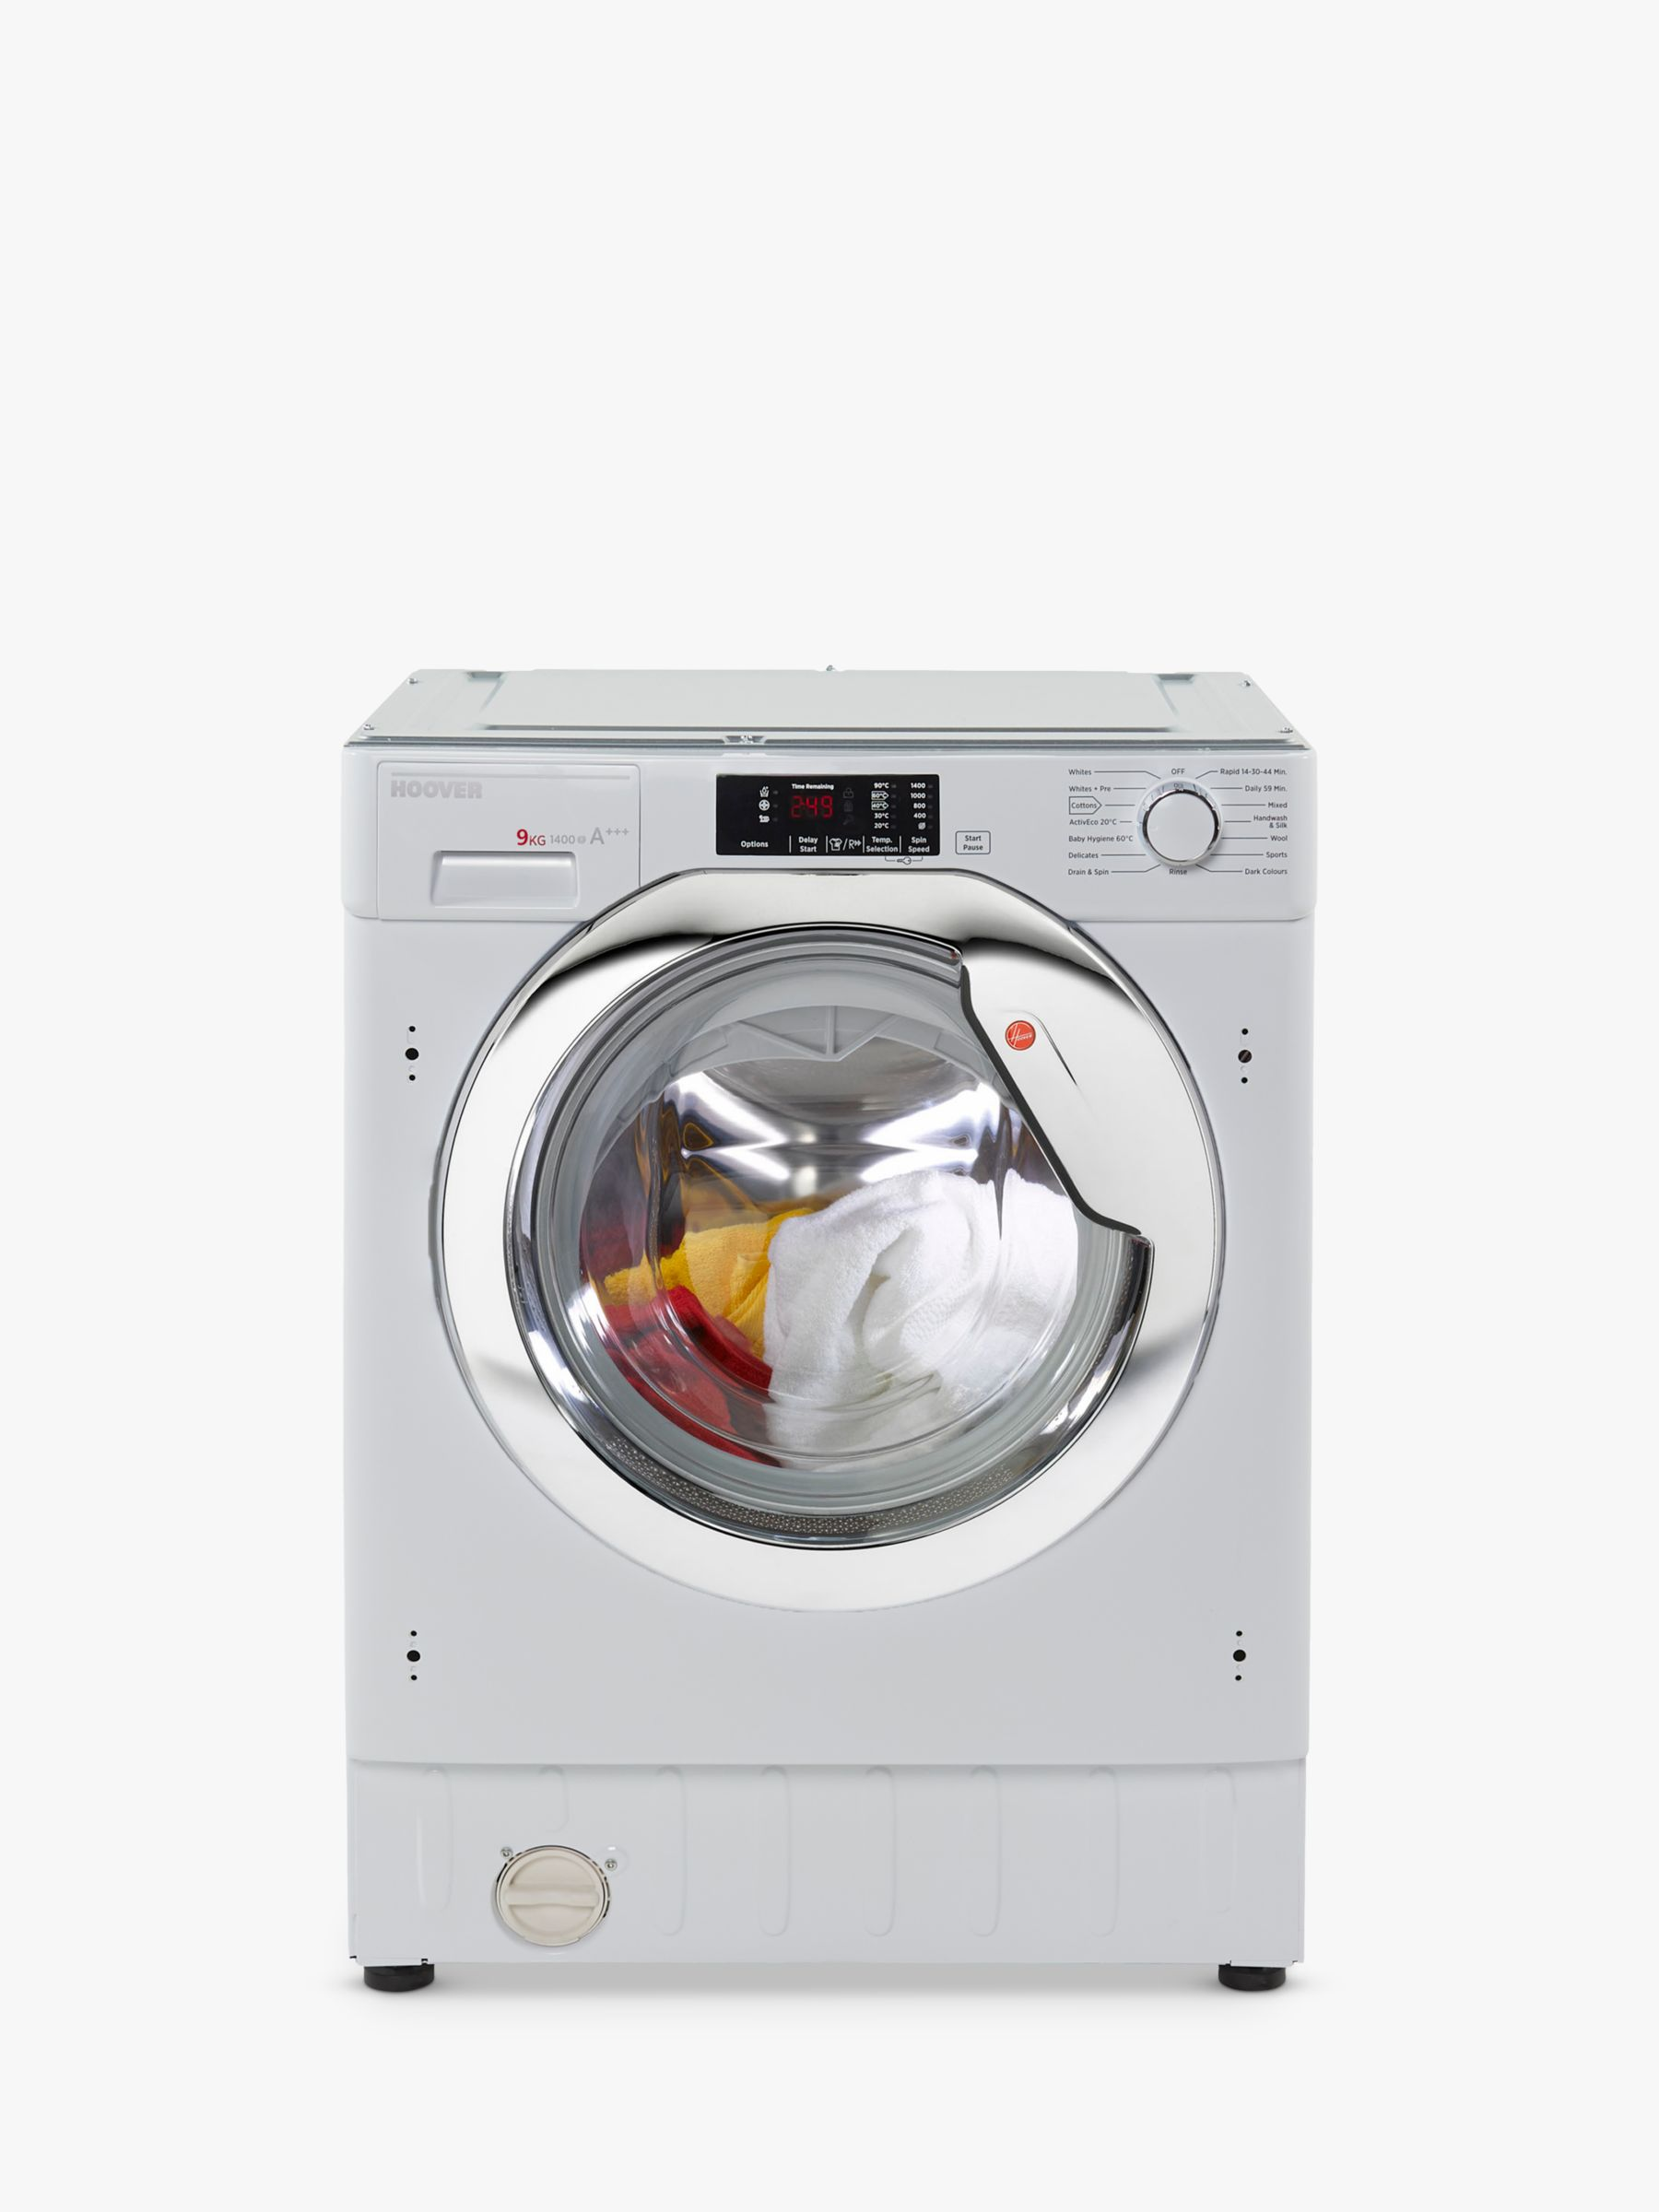 buyhoover hbwm 914dc 80 integrated washing machine 9kg load a energy rating  [ 1440 x 1920 Pixel ]